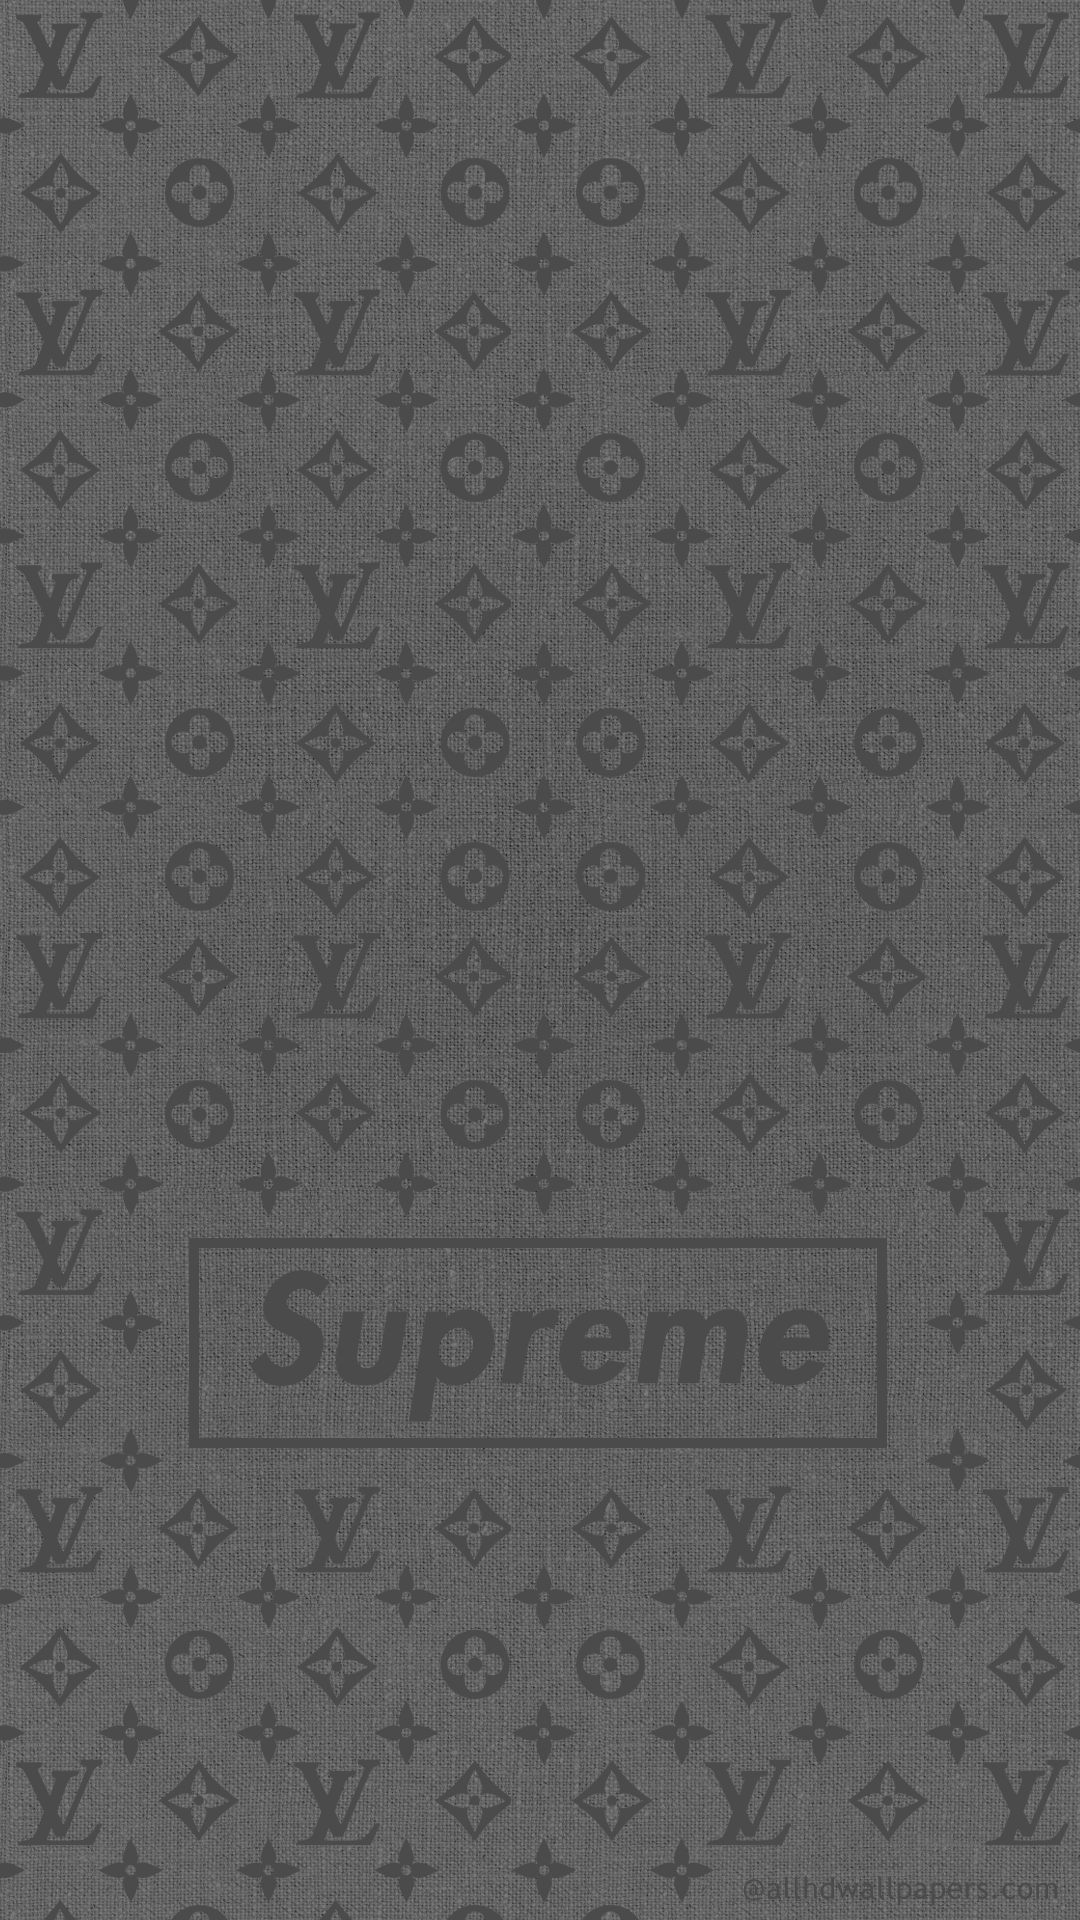 Supreme mobile wallpaper